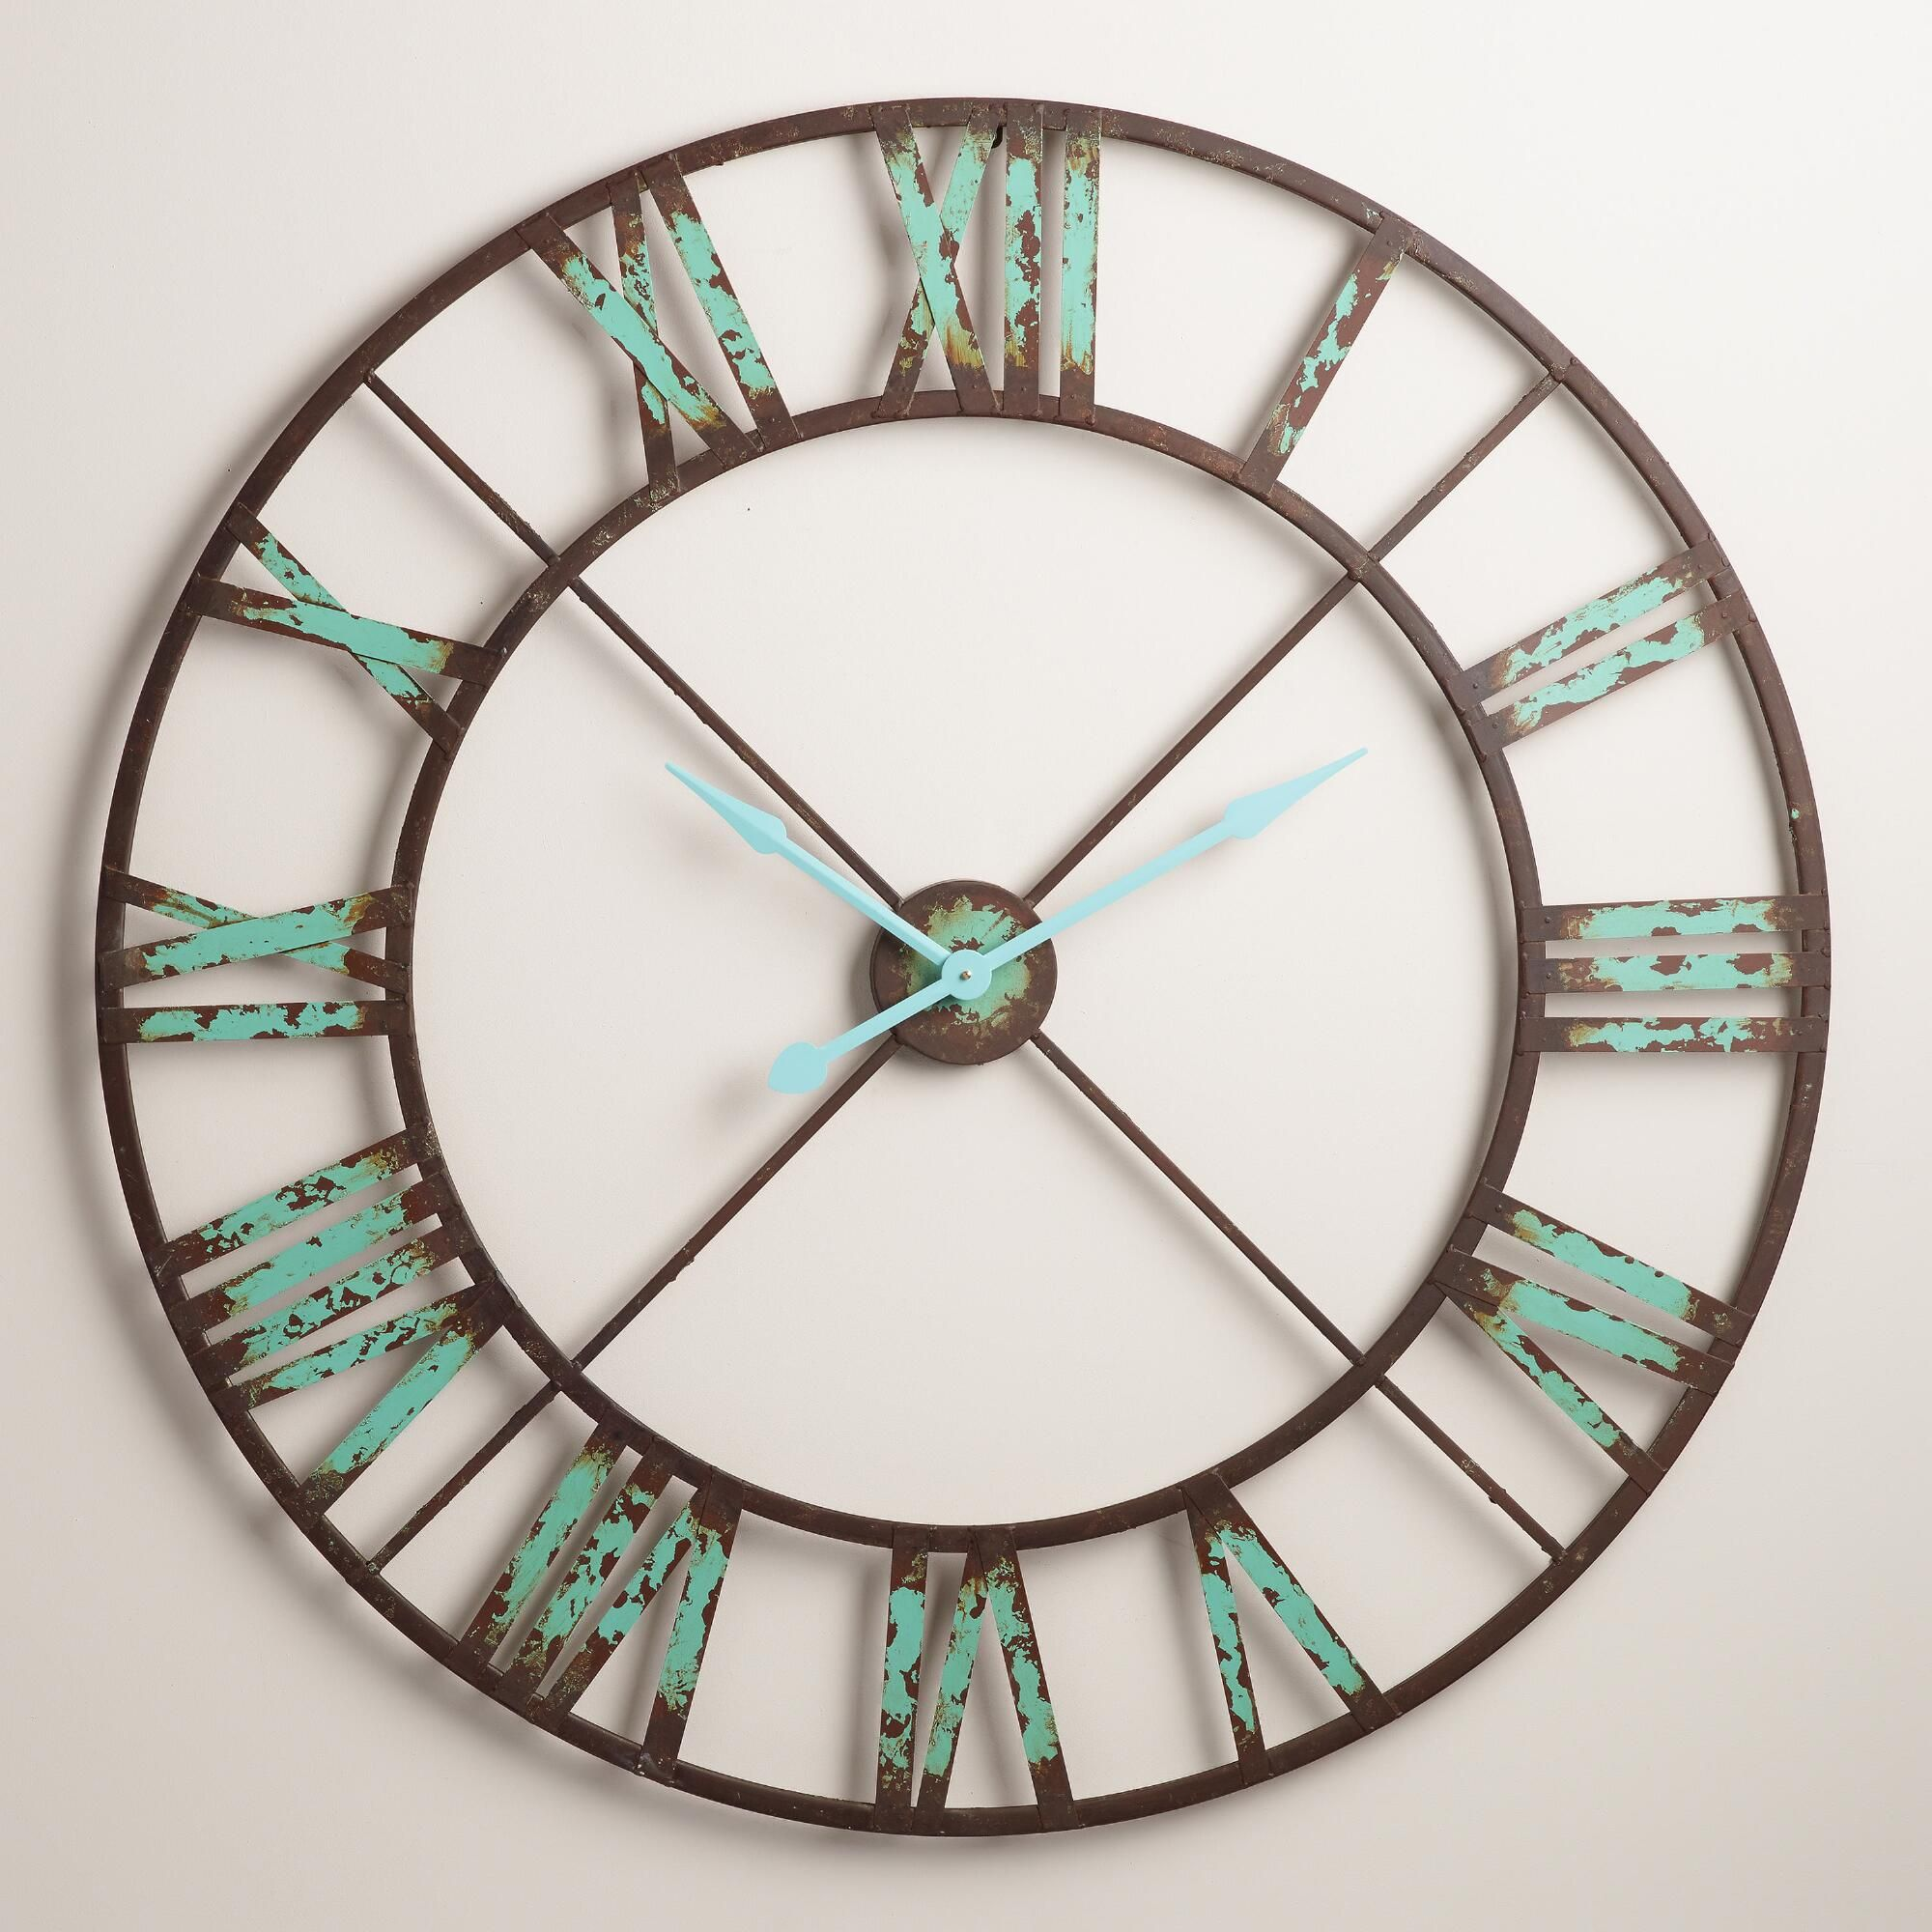 A bold statement piece for the kitchen or living room, our oversized ...